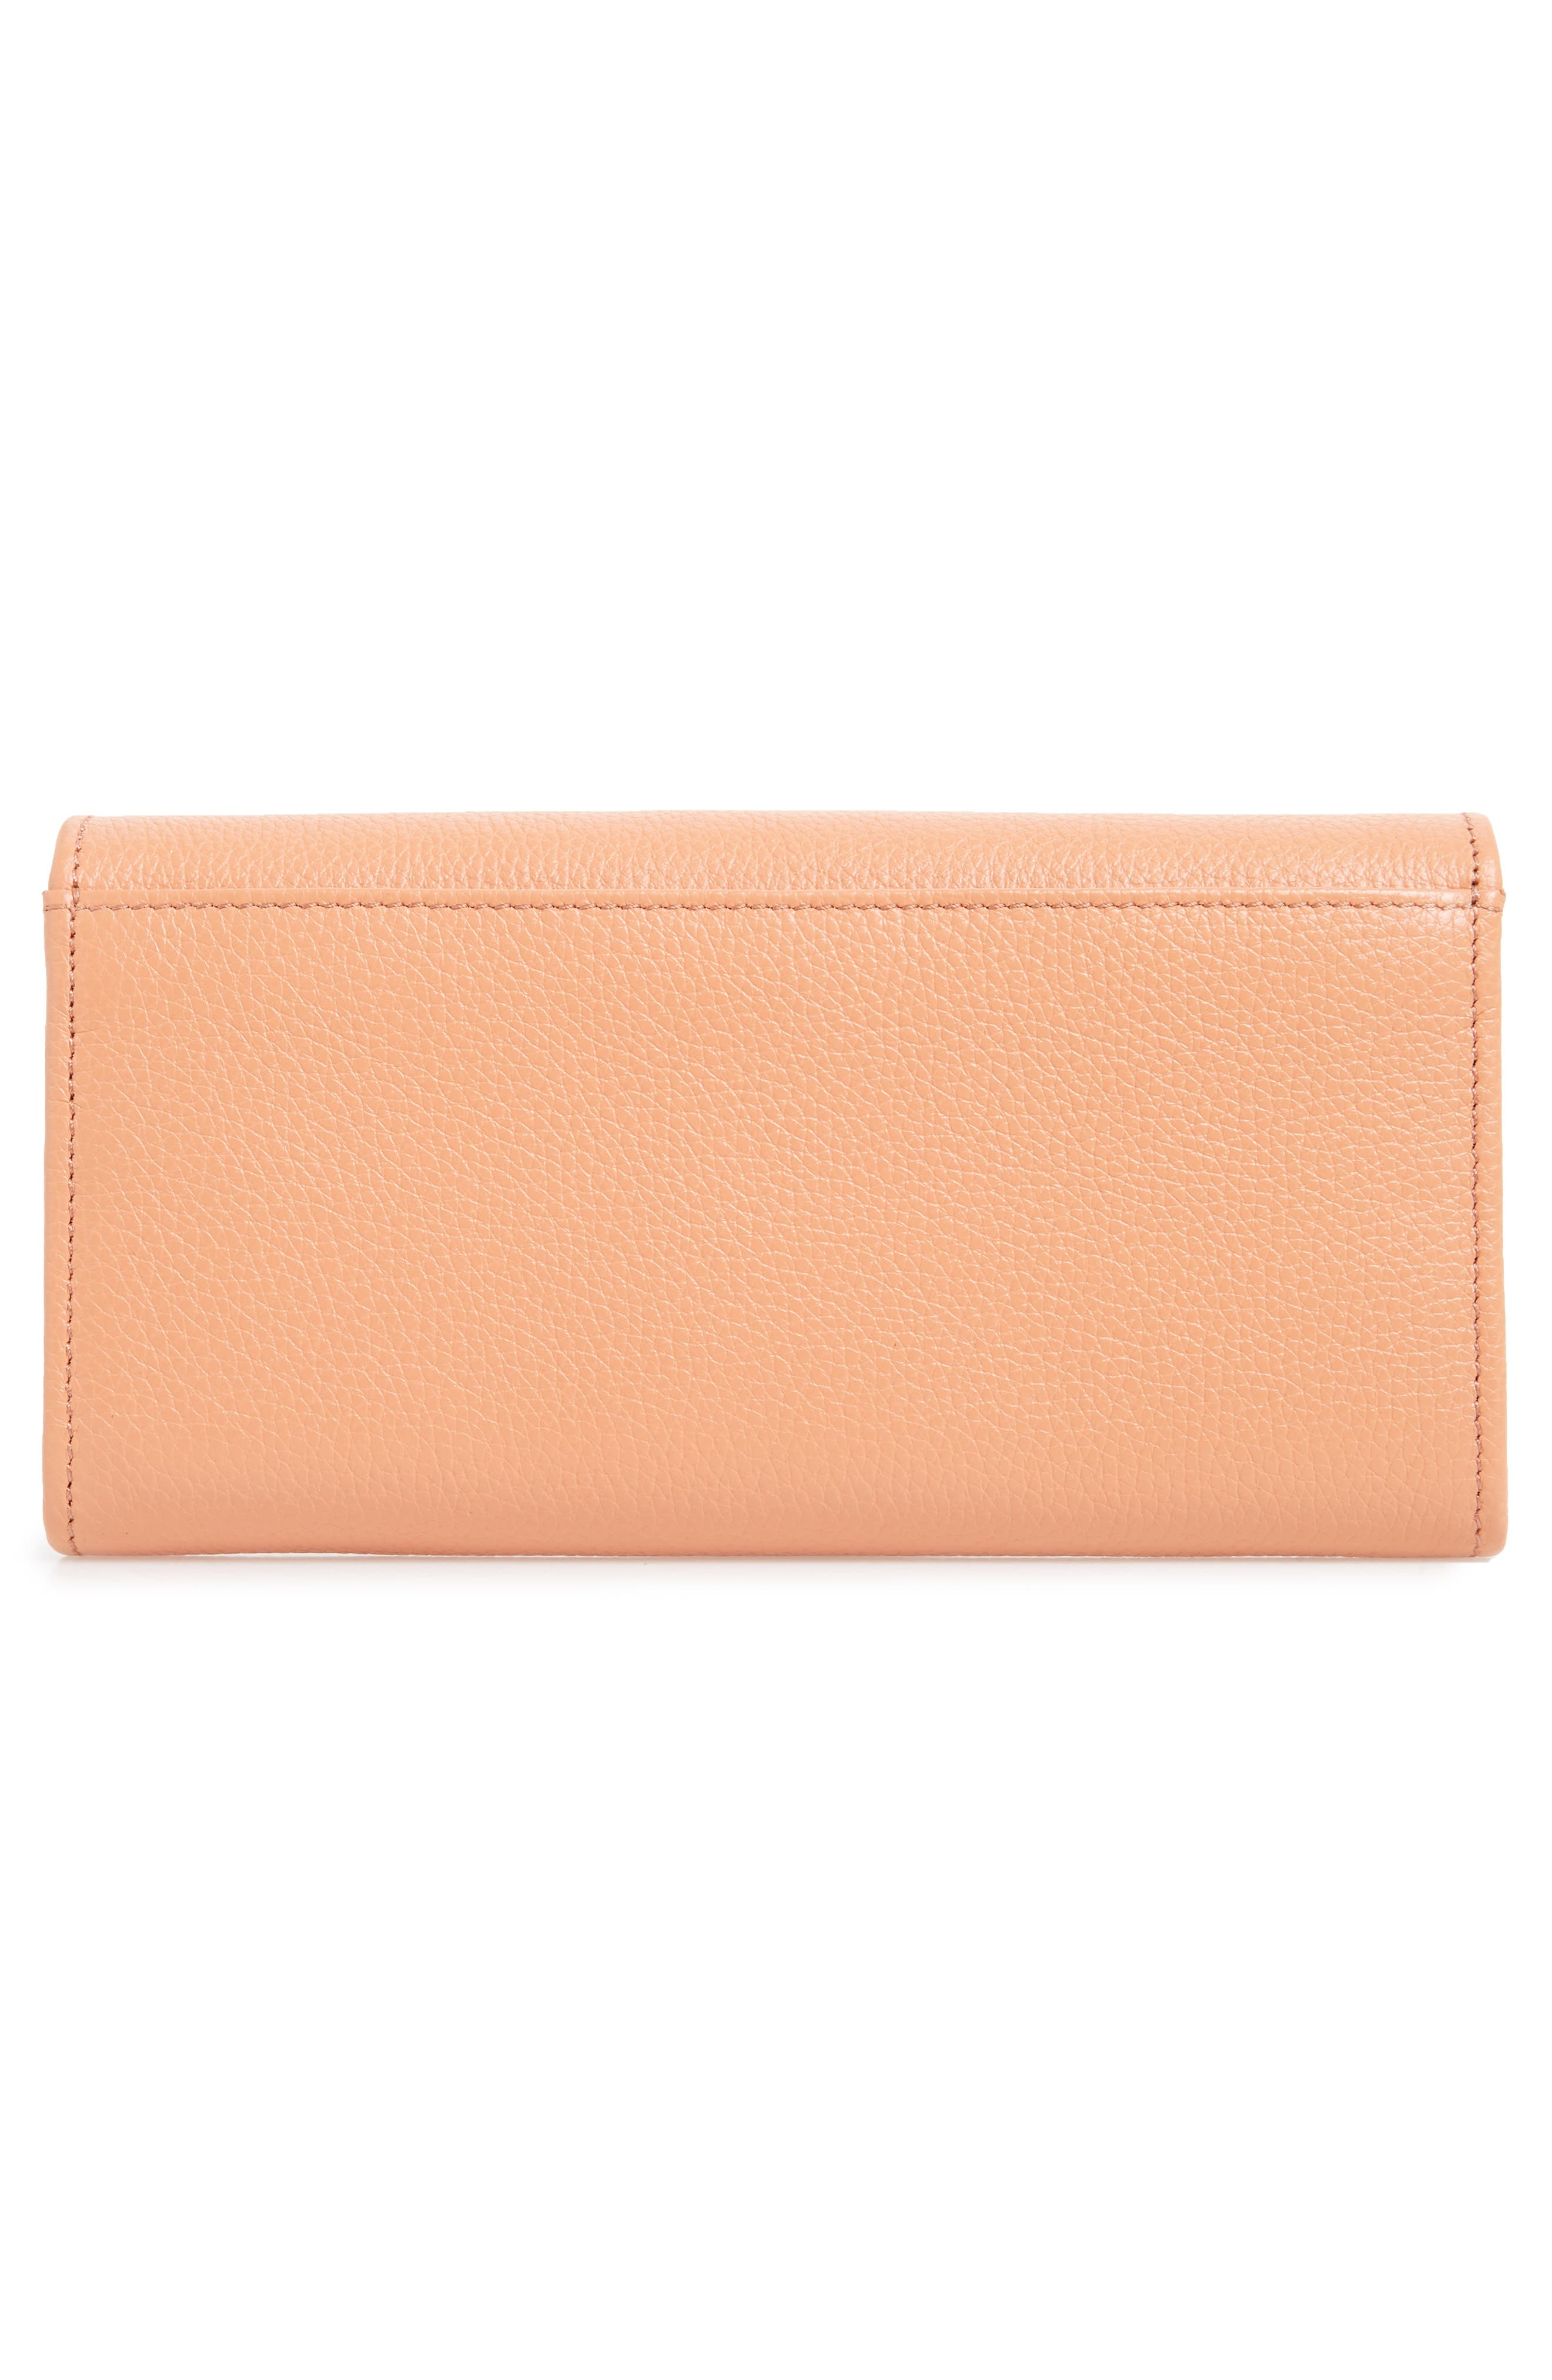 Lizzie Leather Continental Wallet,                             Alternate thumbnail 3, color,                             Canyon Sunset